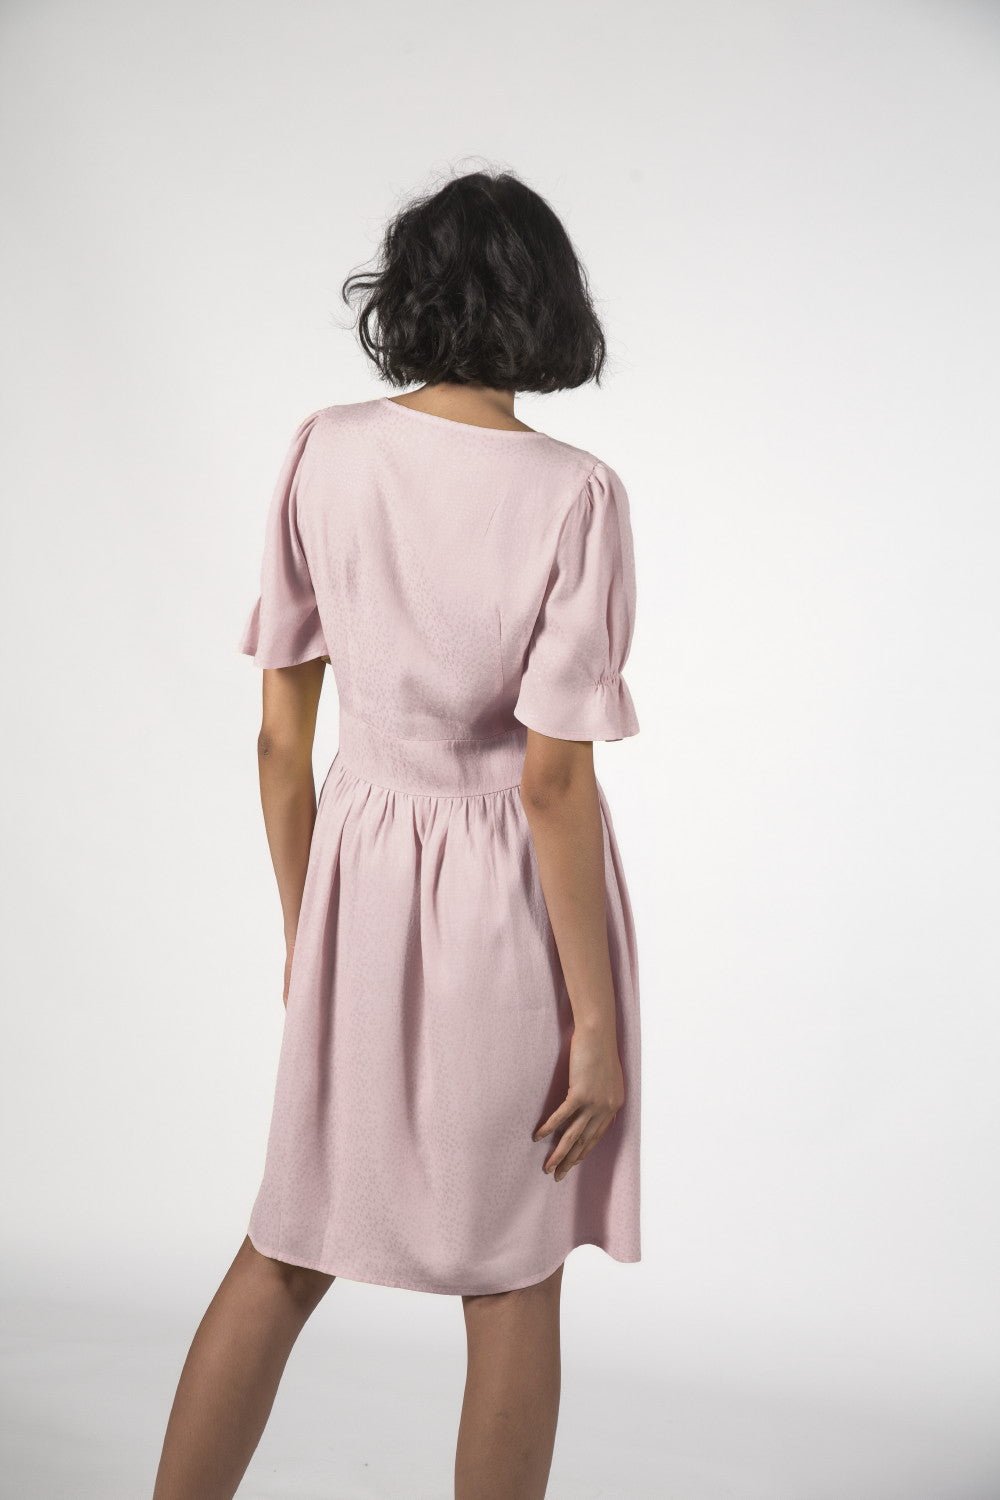 ROSIE DRESS - Dusky Pink